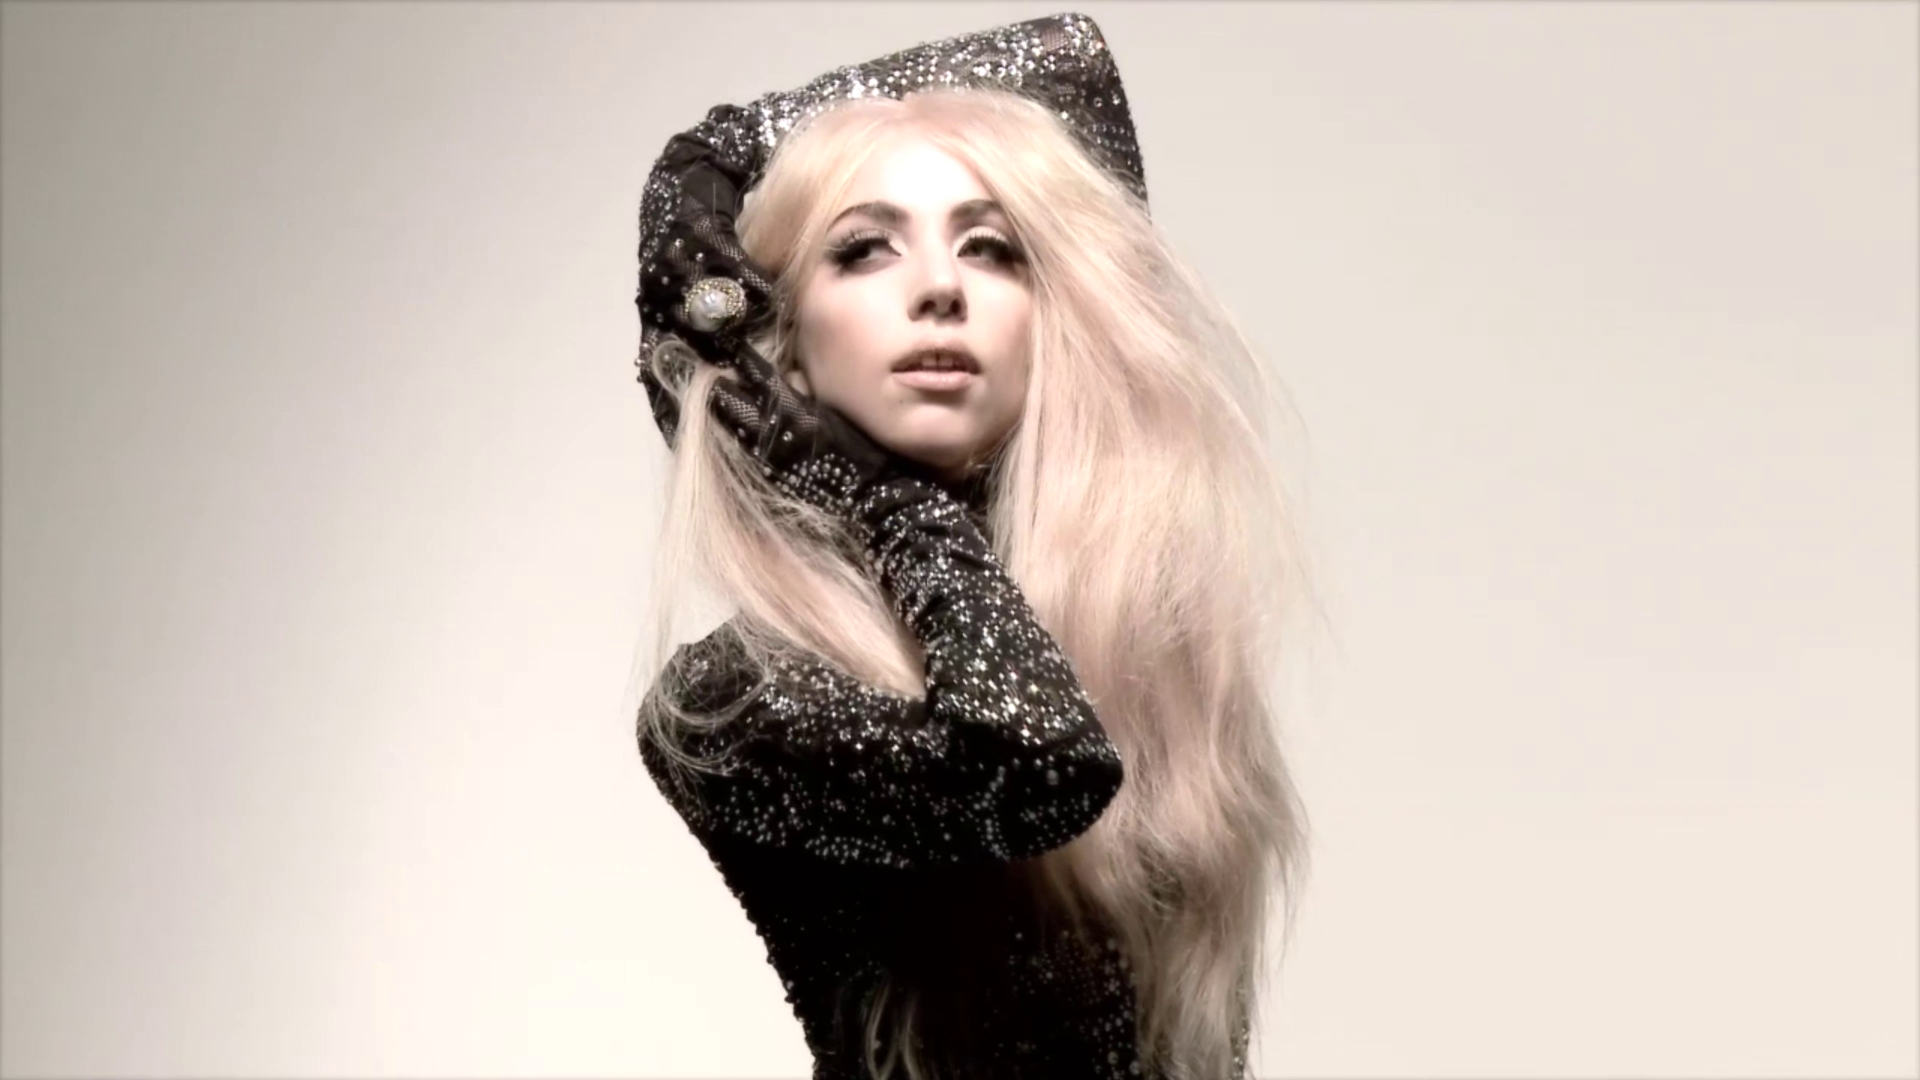 File:Gaga-vanity-fair.jpg